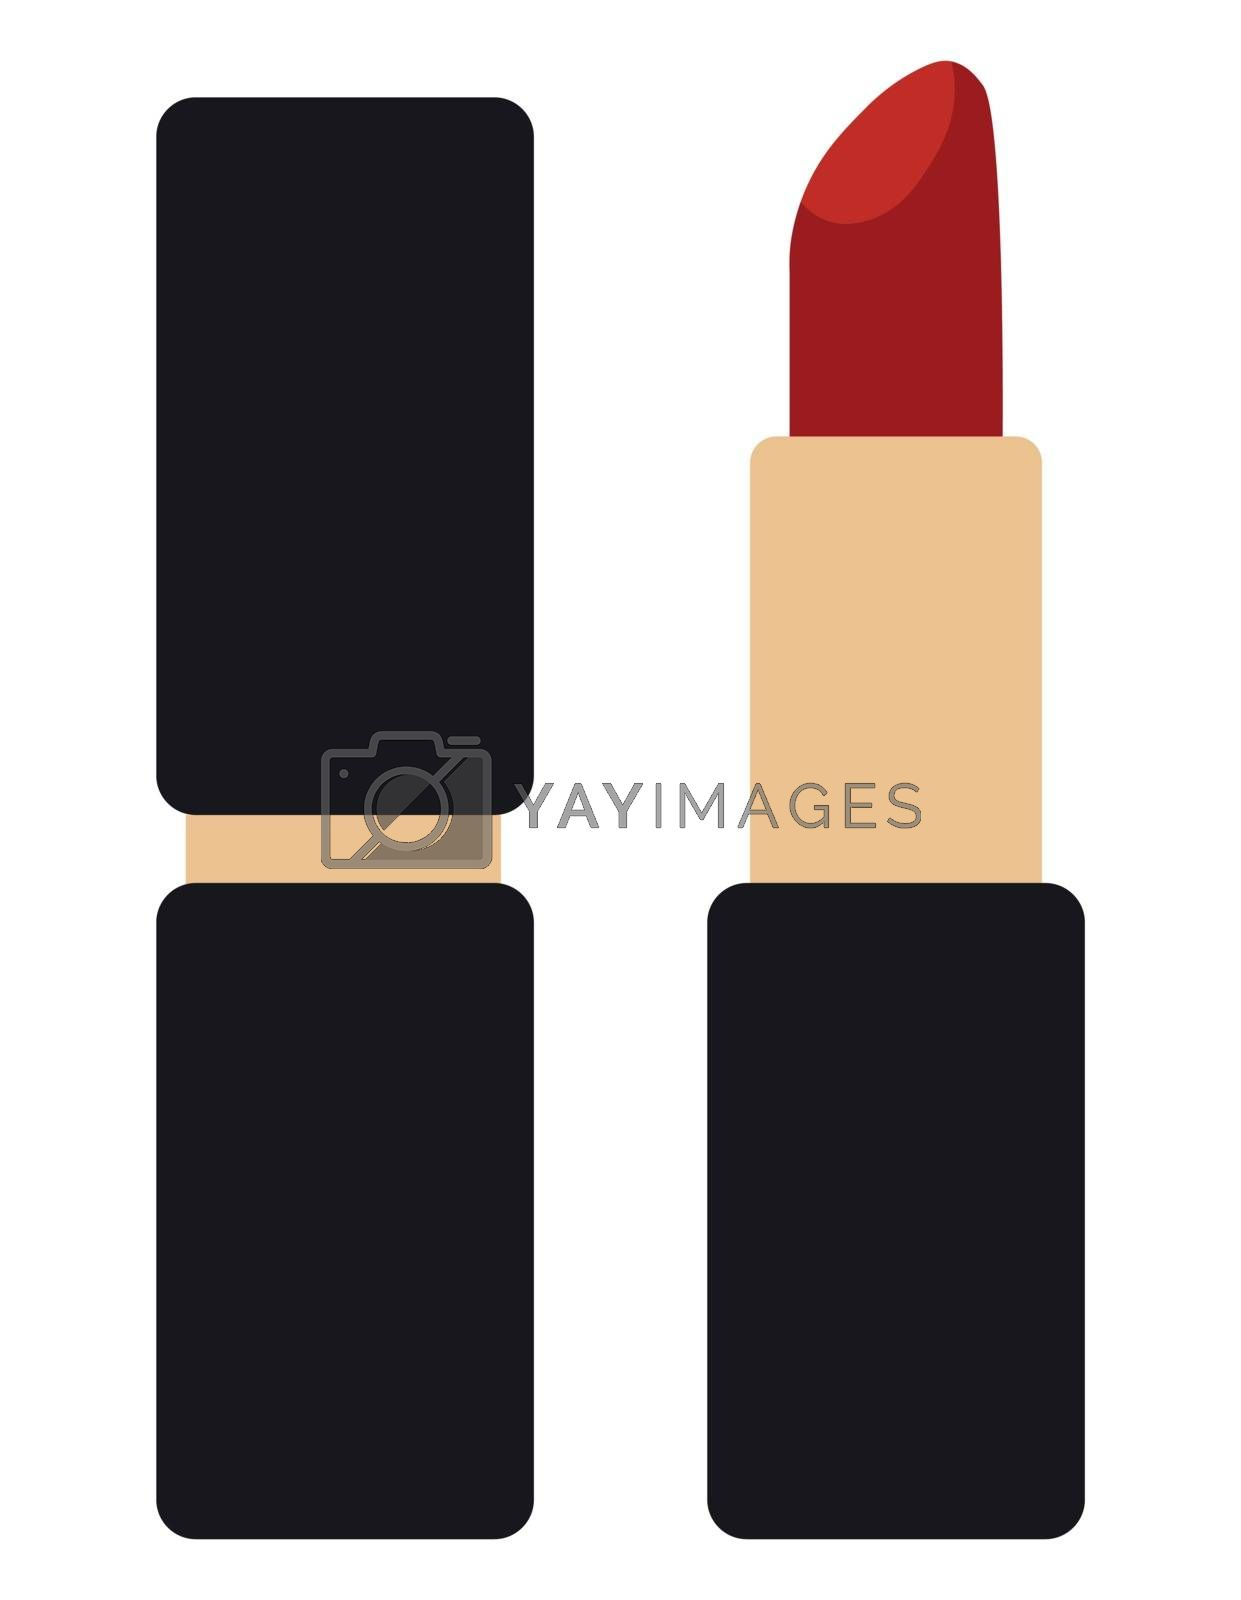 Lipstick flat icon isolated on white background. Vector Illustration.